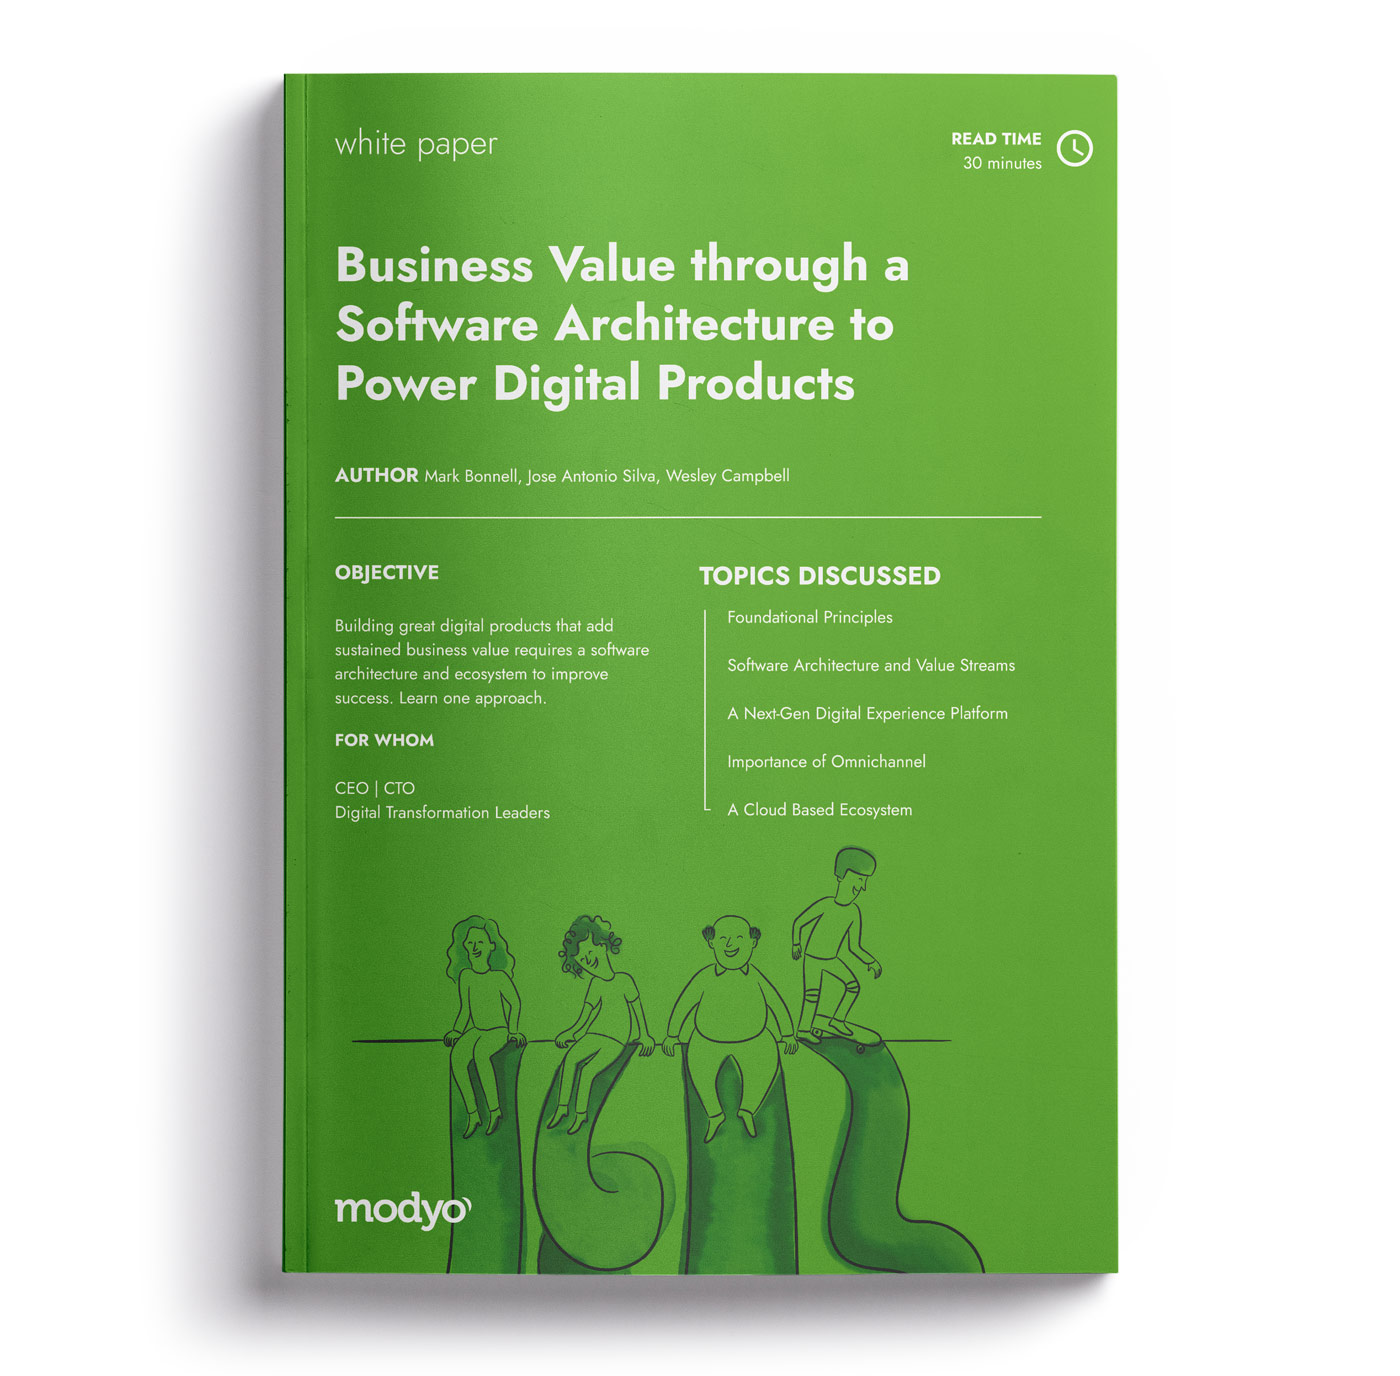 Business Value through a Software Architecture to Power Digital Products